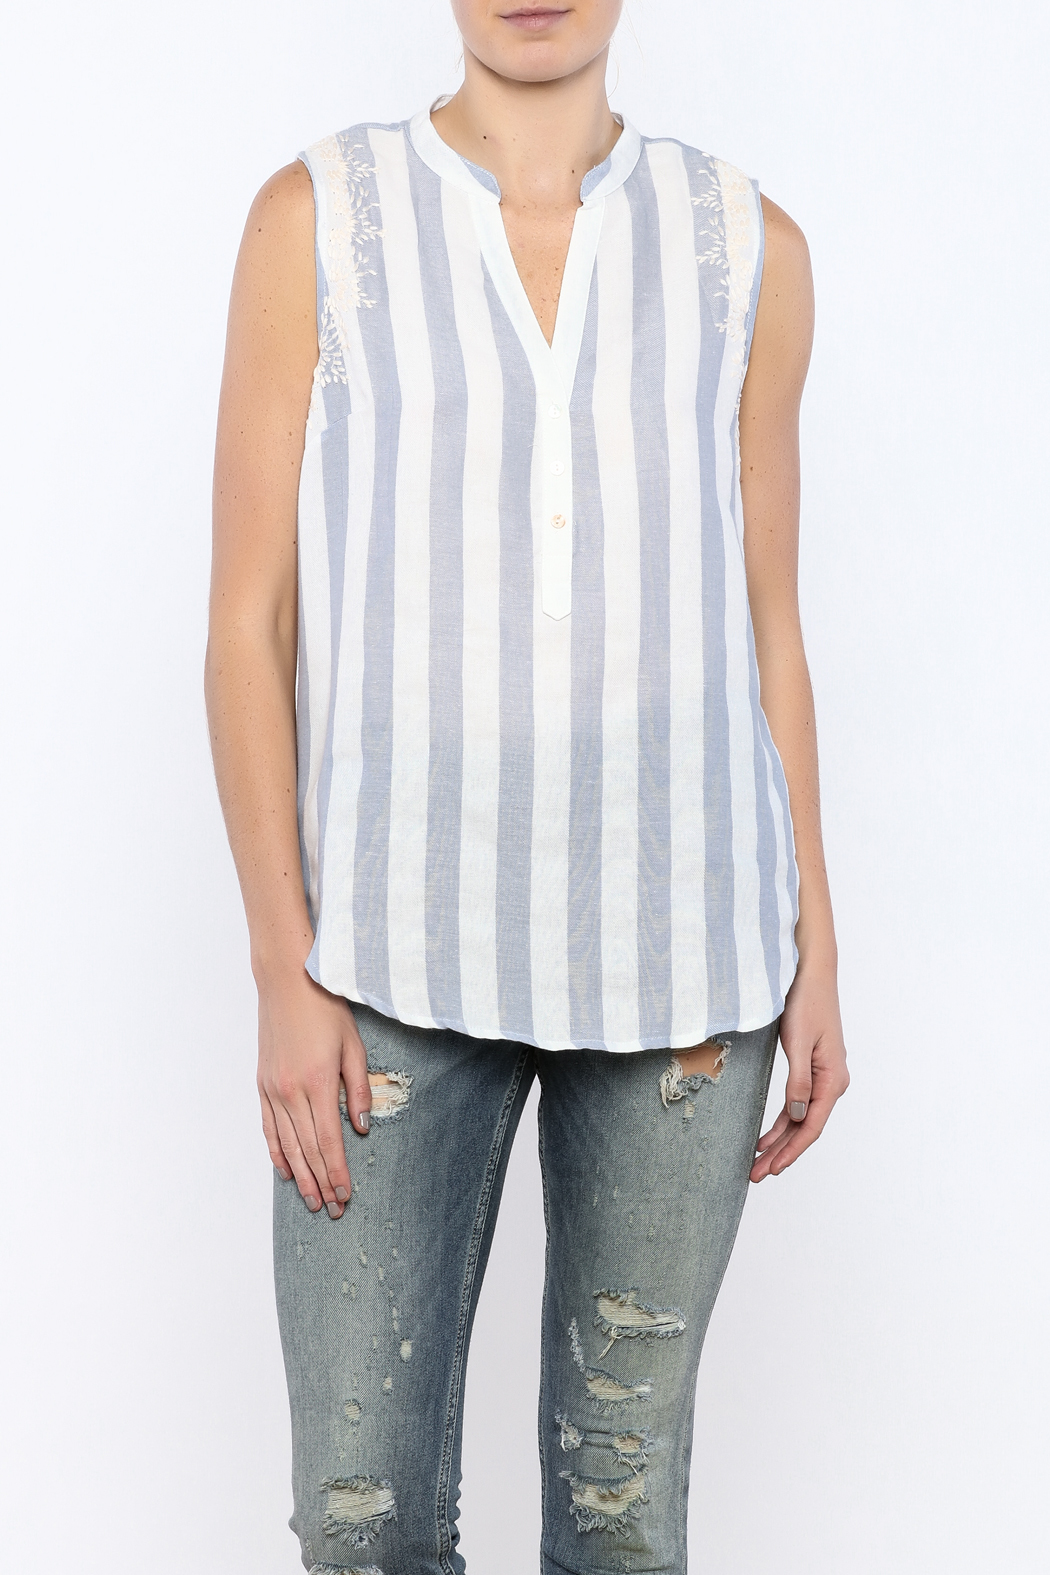 Bacio Stripe Sleeveless Top - Main Image